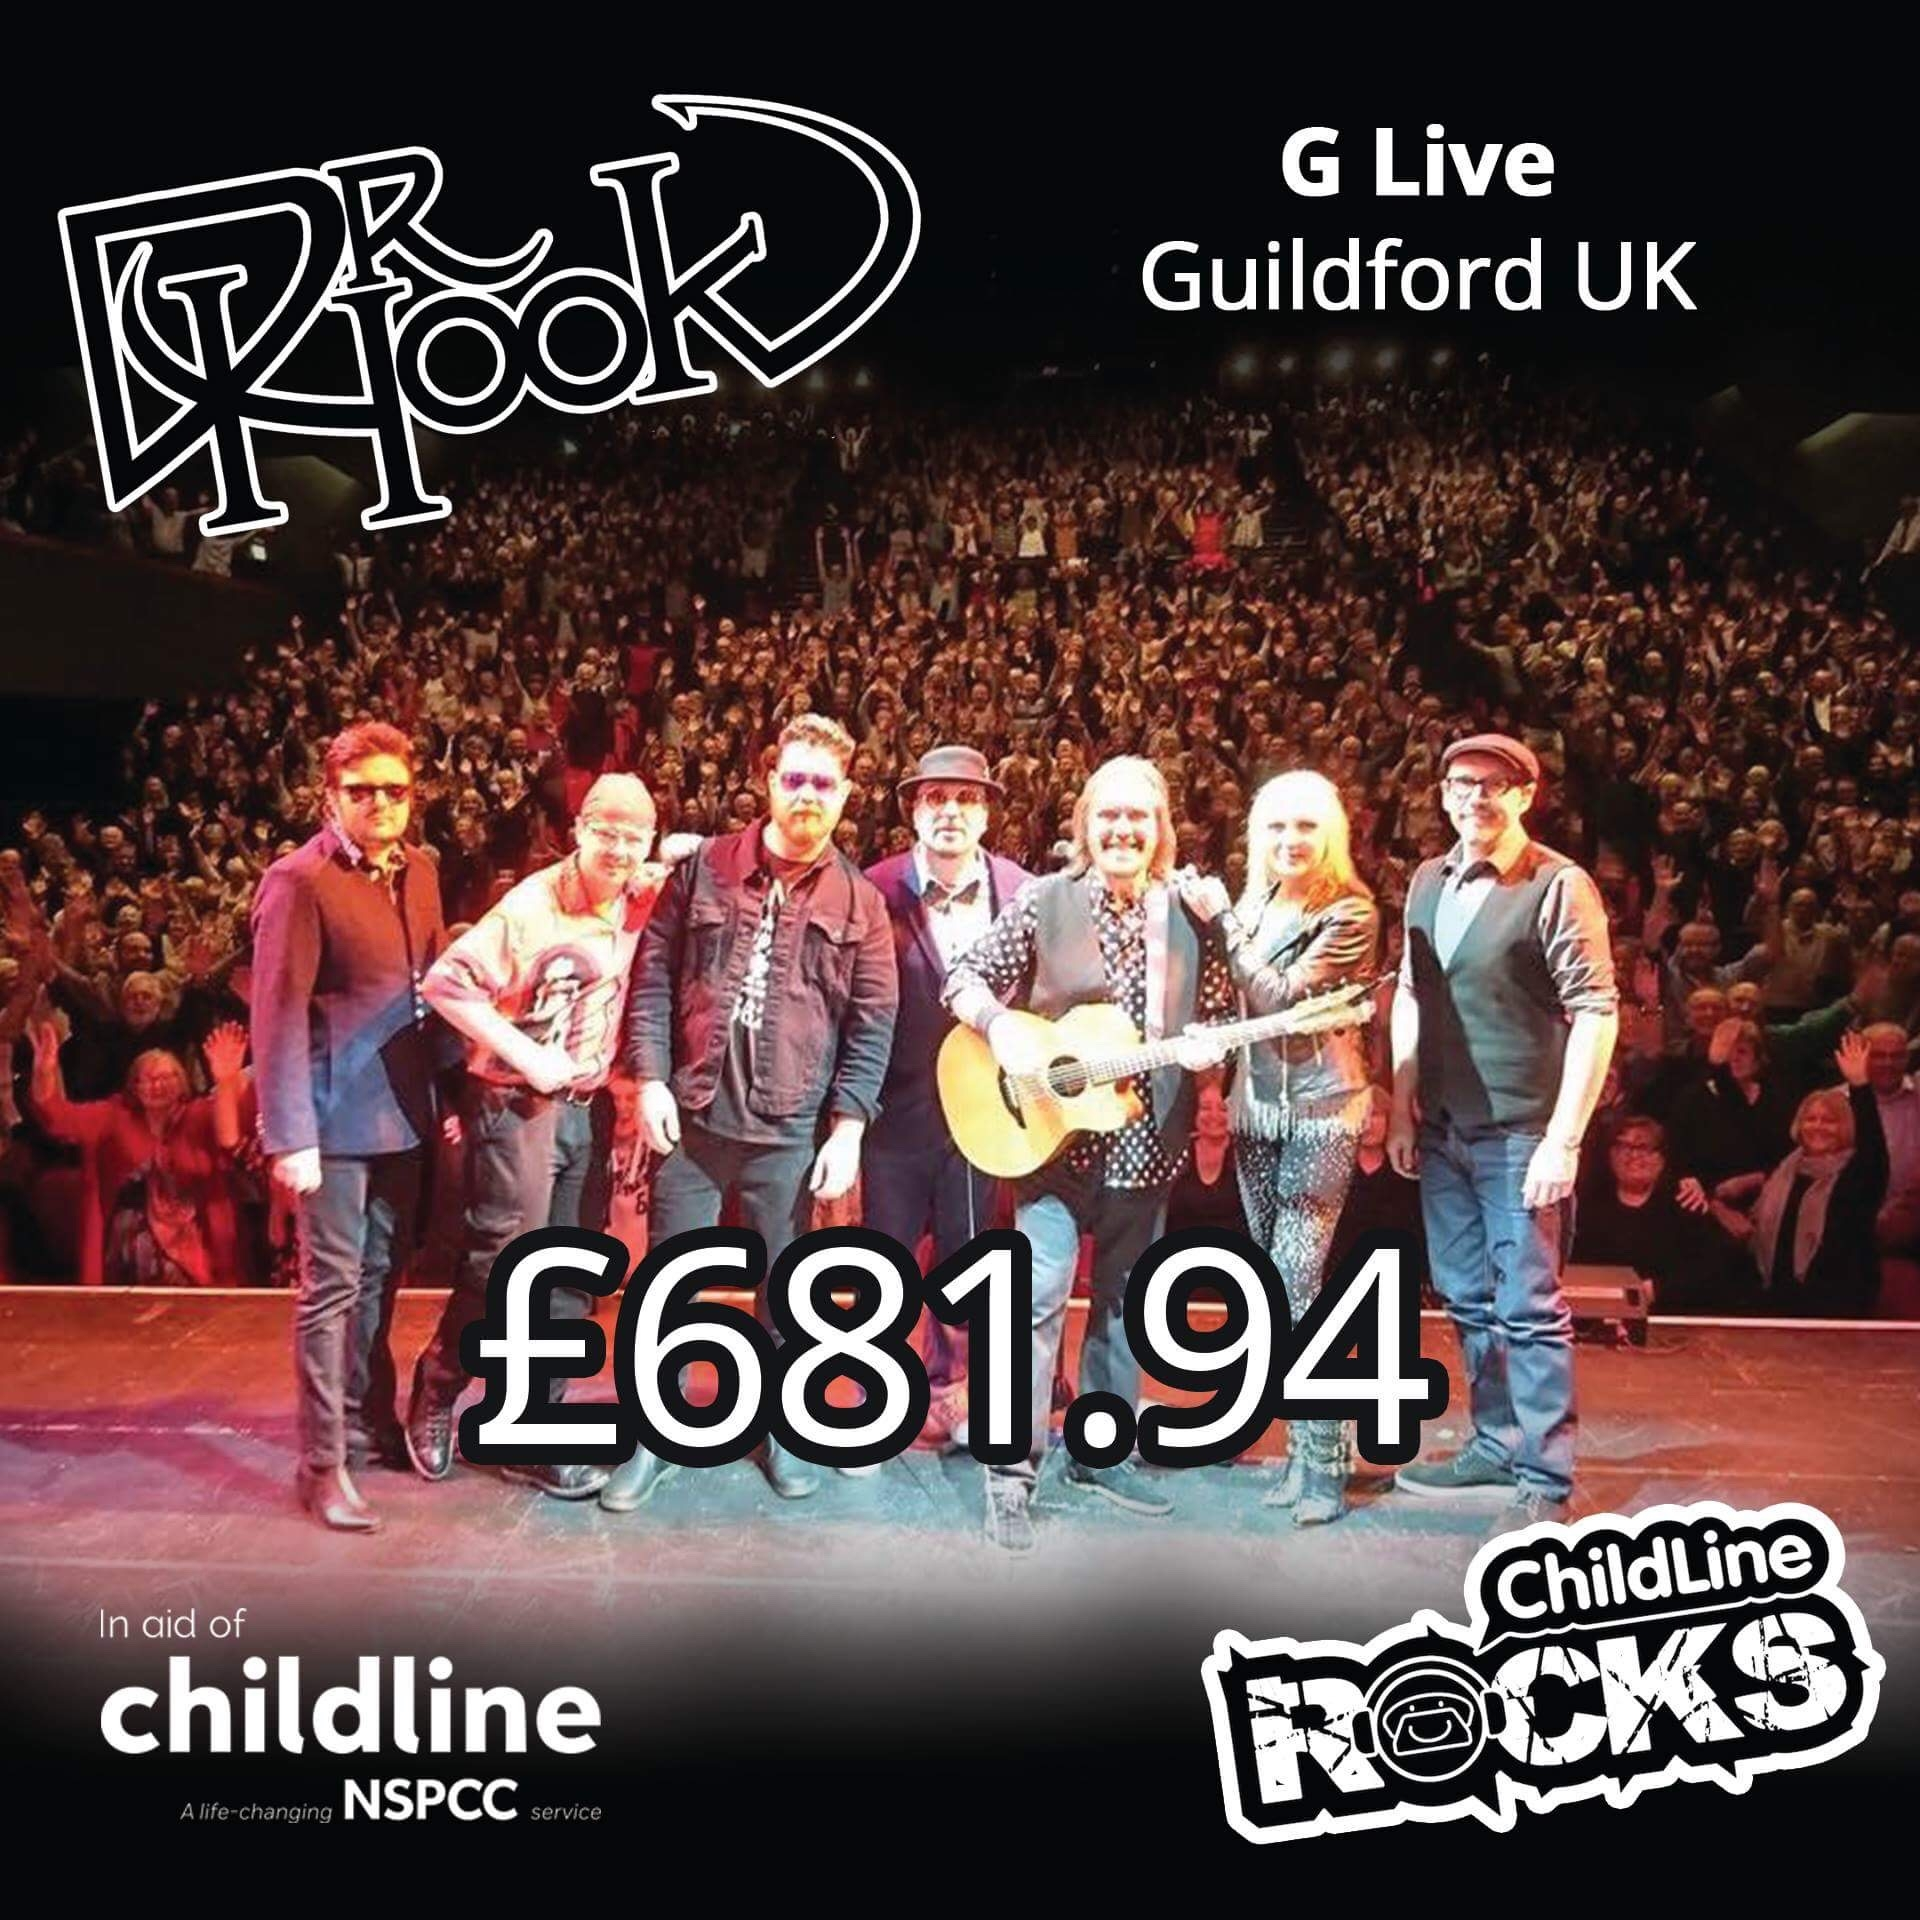 Dr-Hook-Fundraising-NSPCC-Childline-Guildford